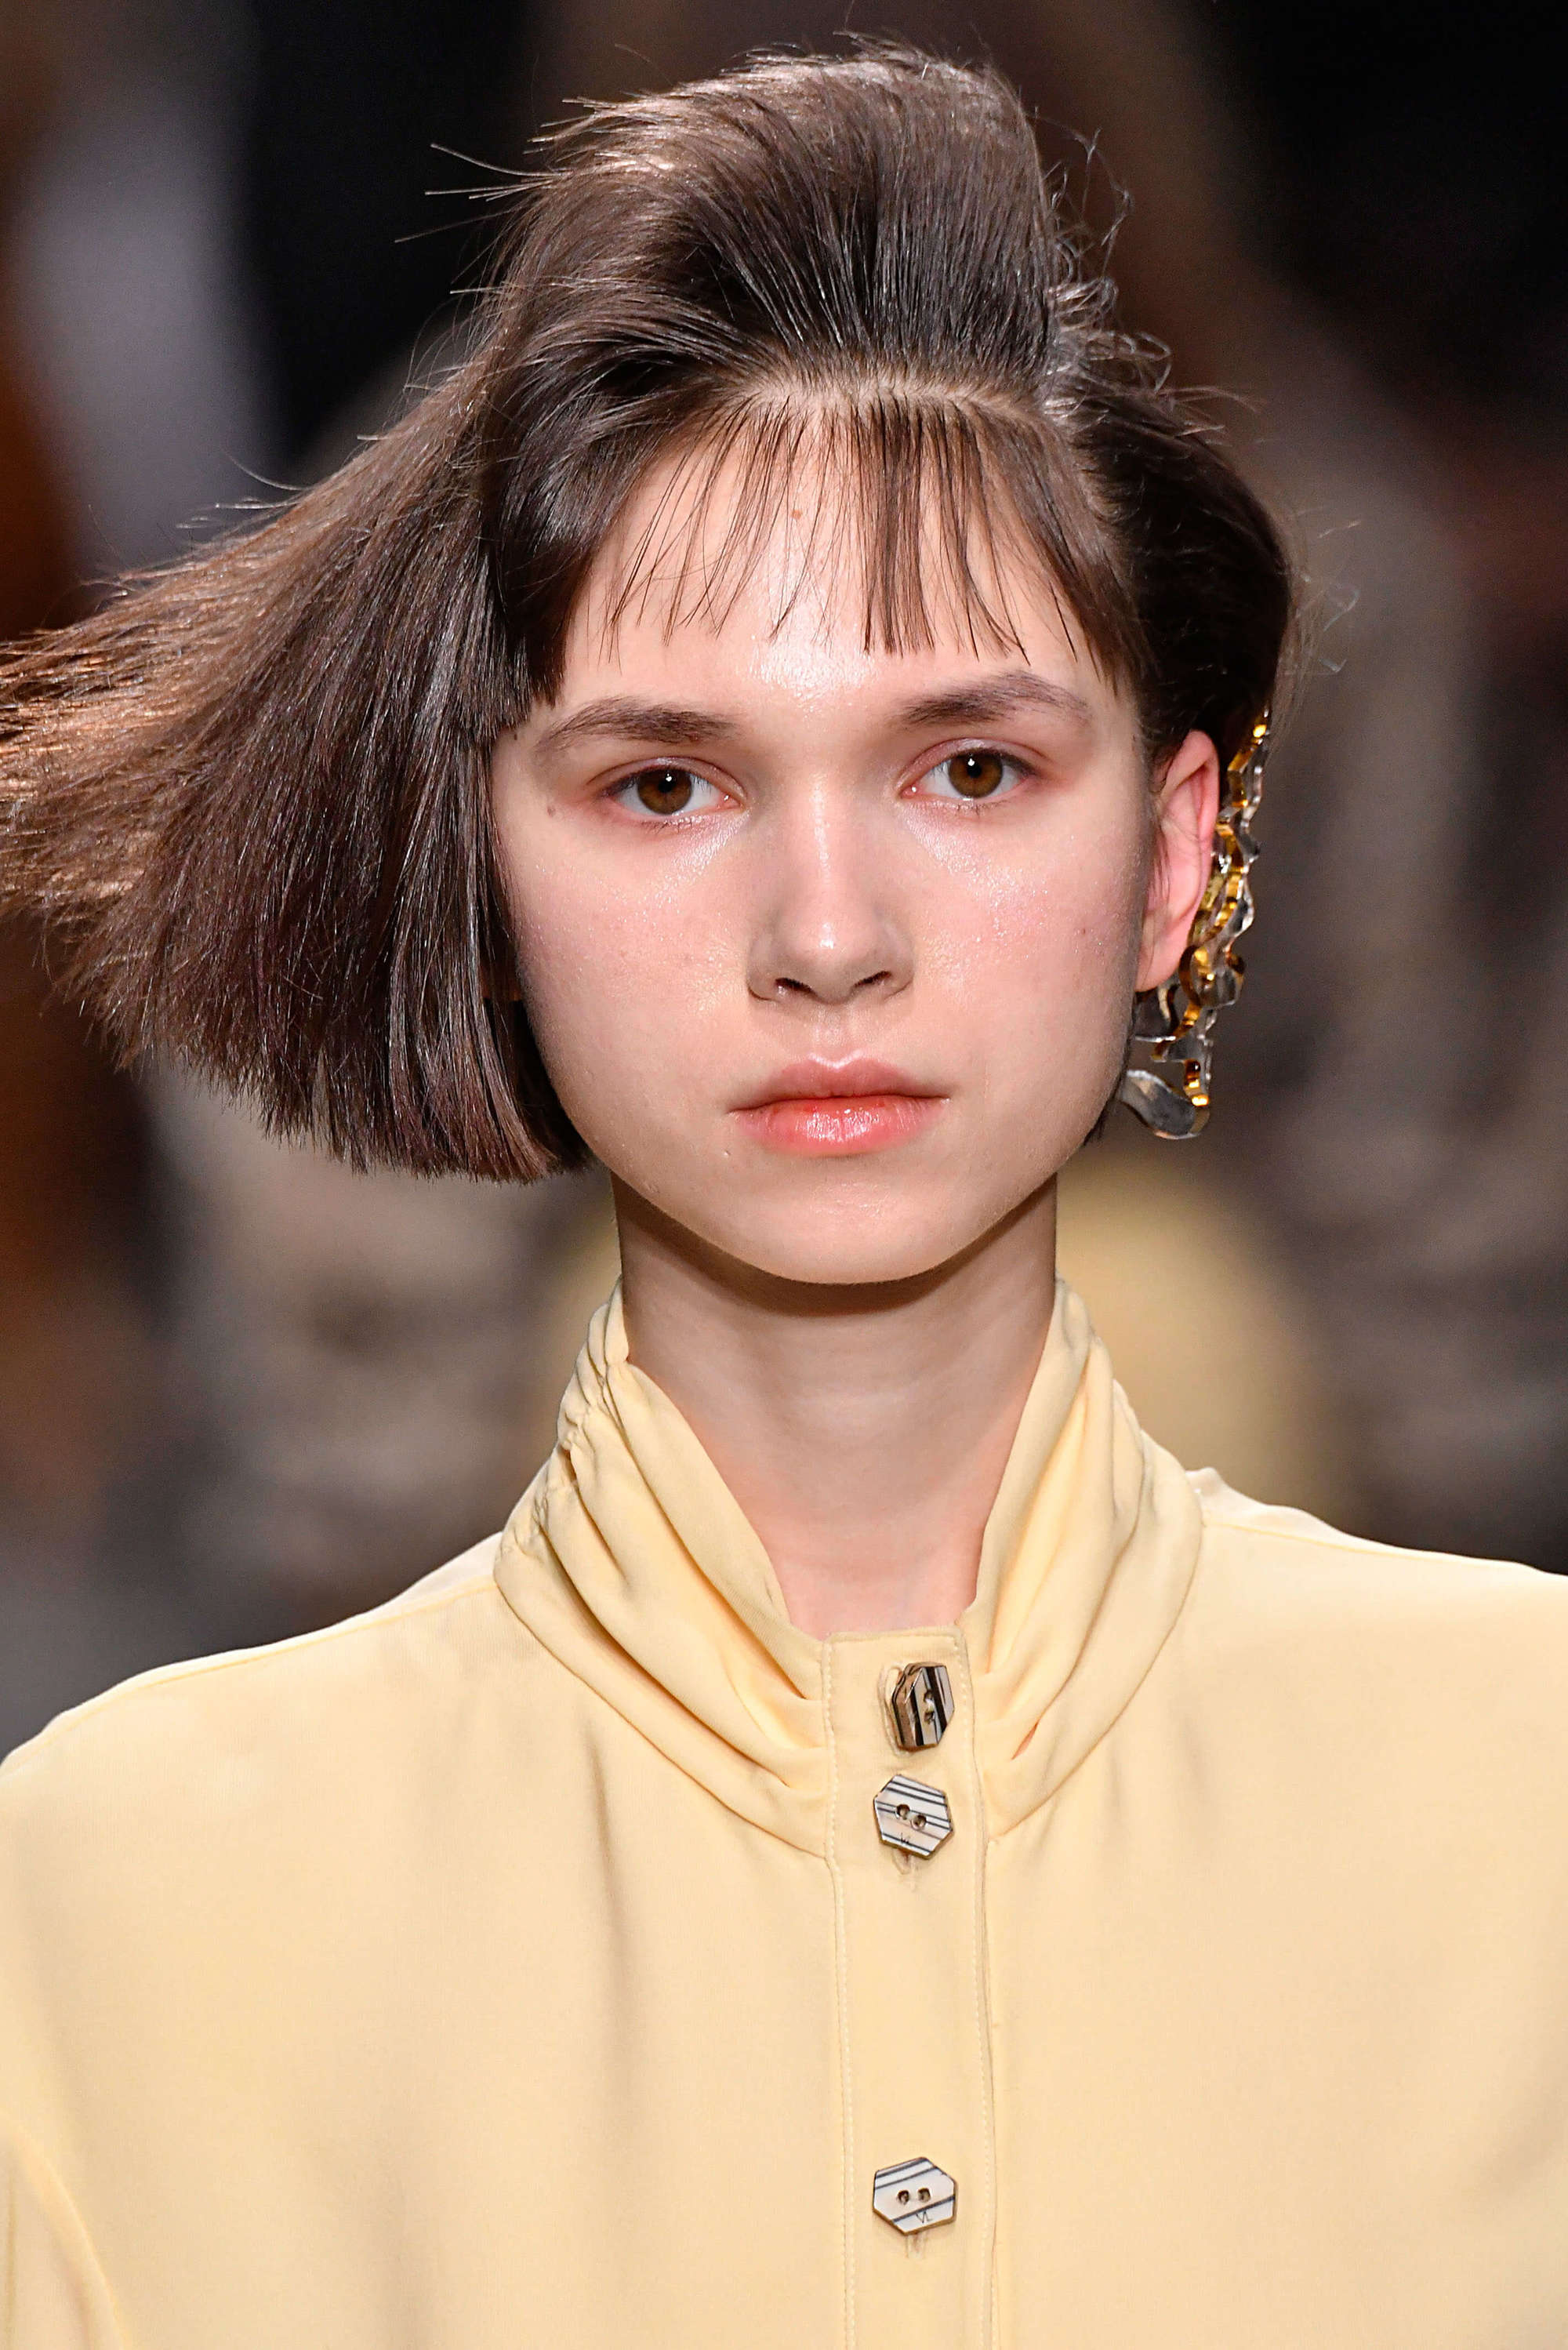 Are '80s Hairstyles Making a Comeback